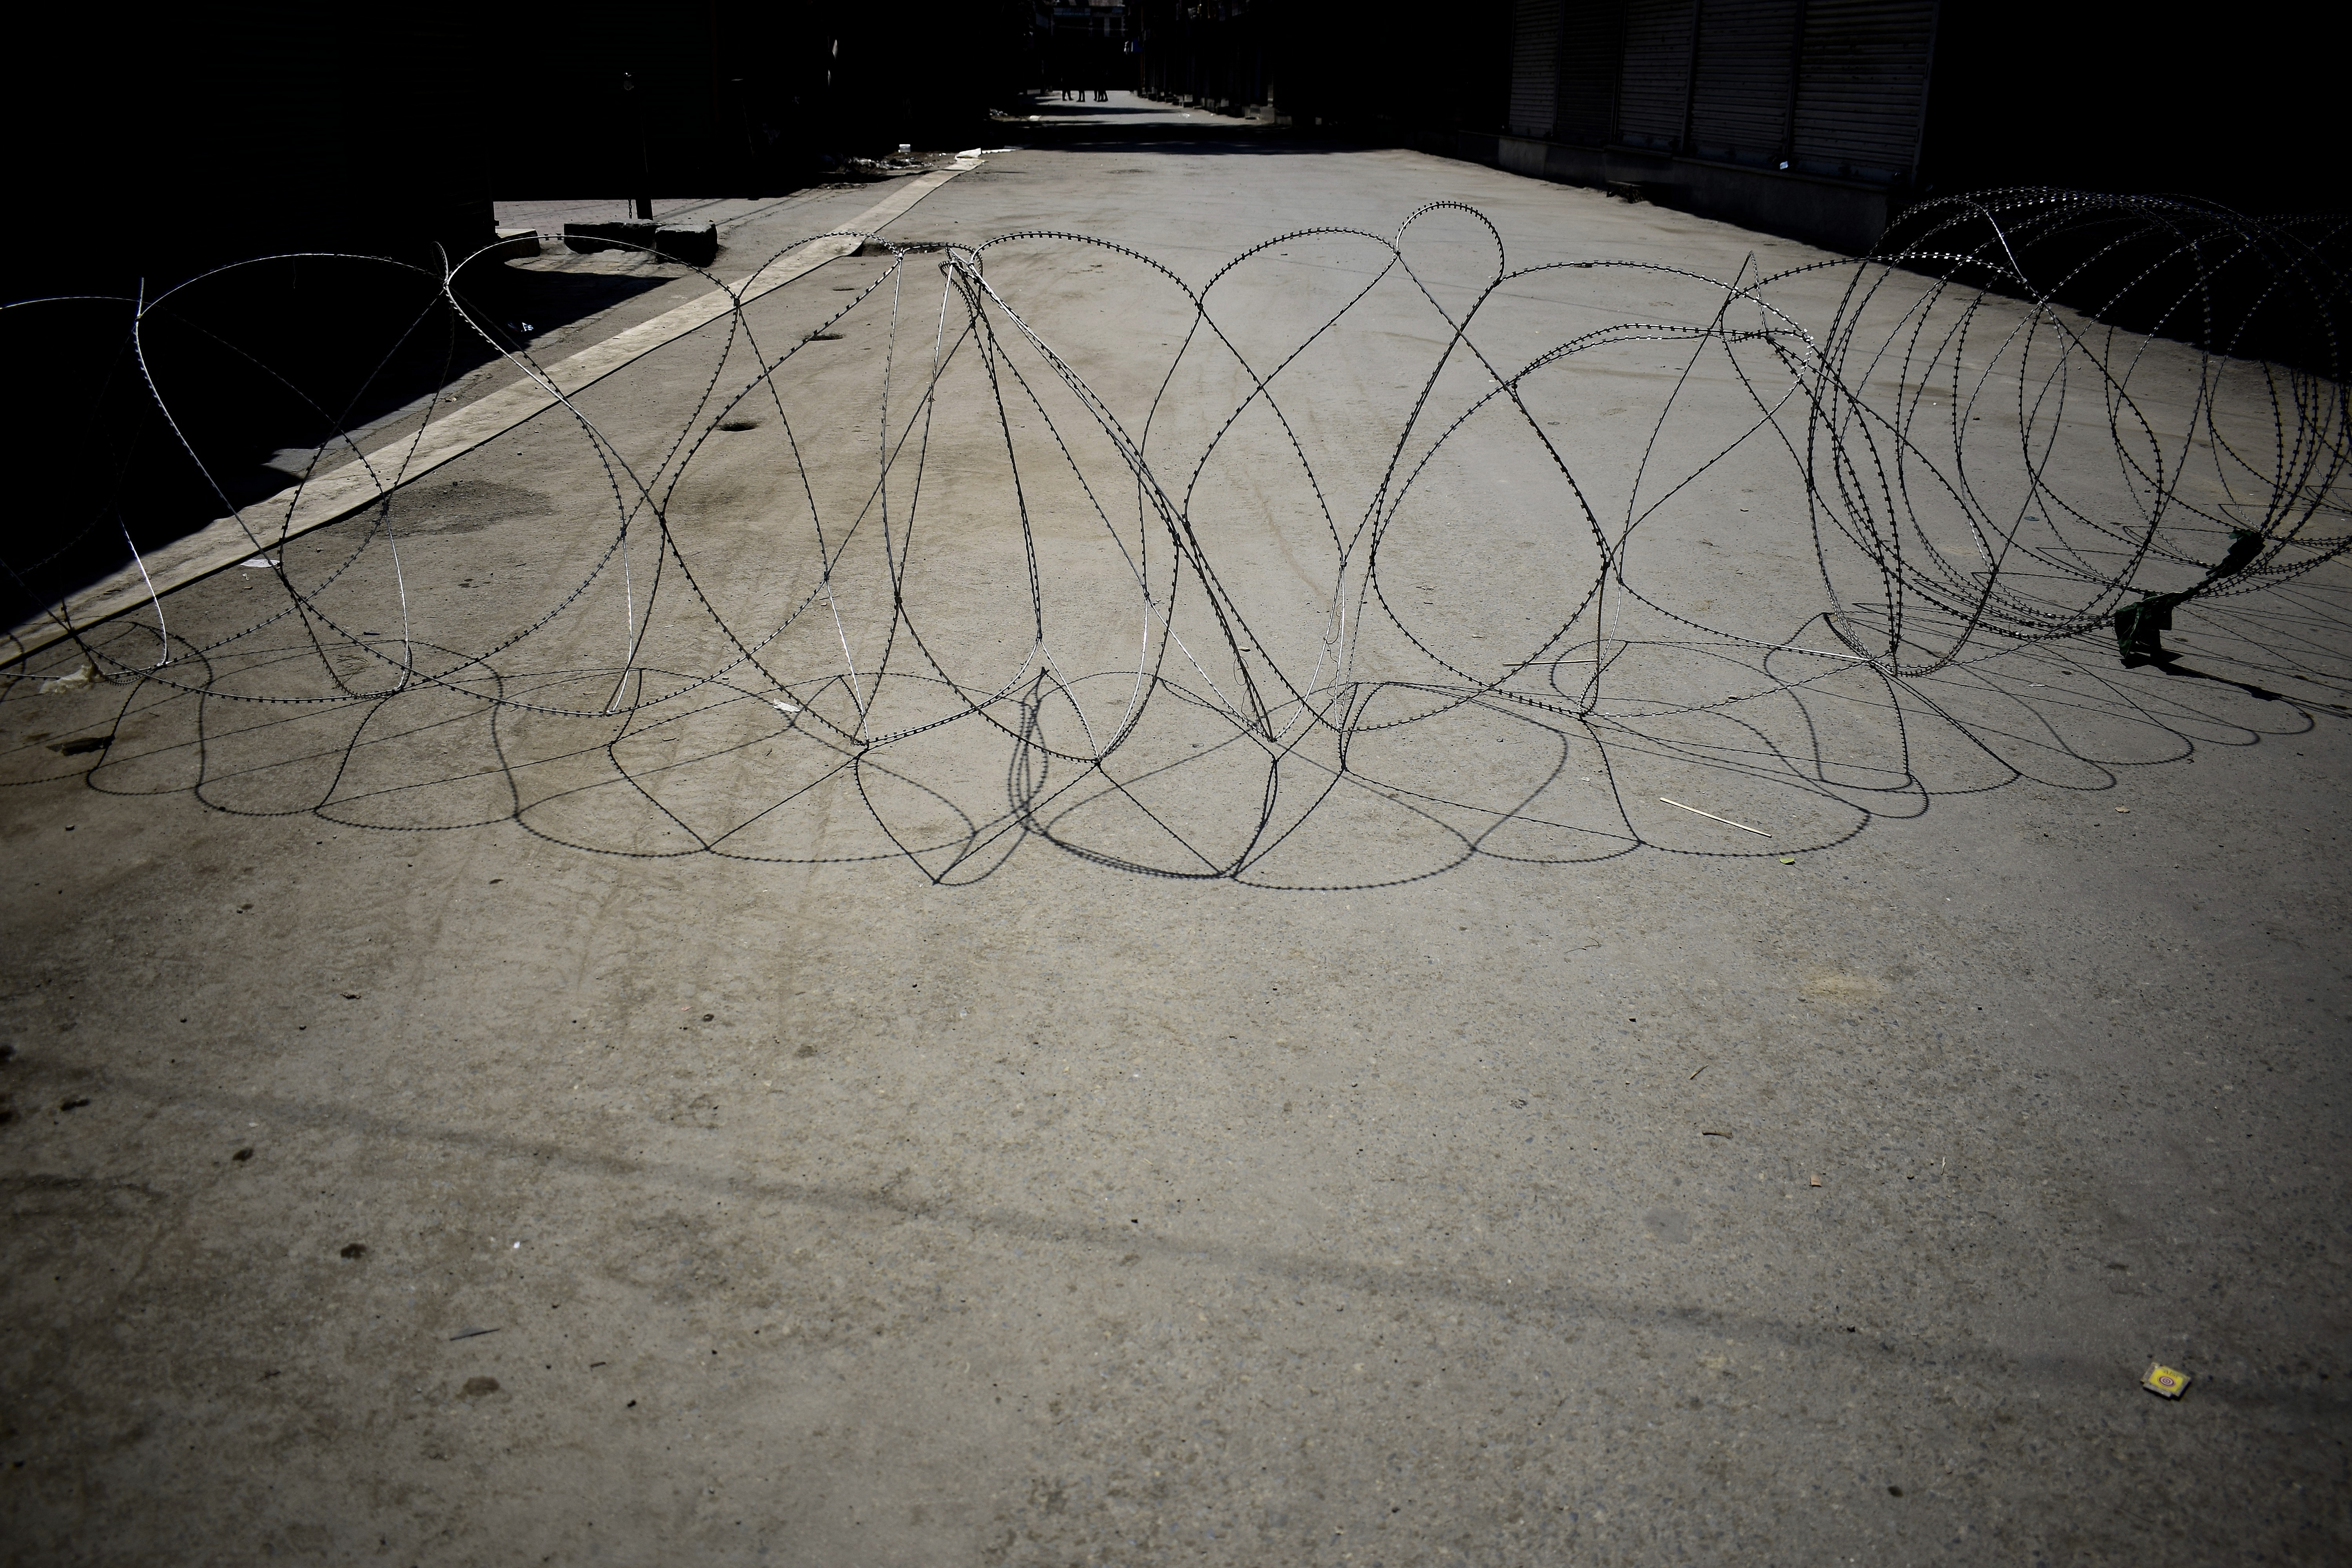 Barbed wire installed to seal roads, imposing curfew, in Srinagar, Kashmir on Aug. 6.